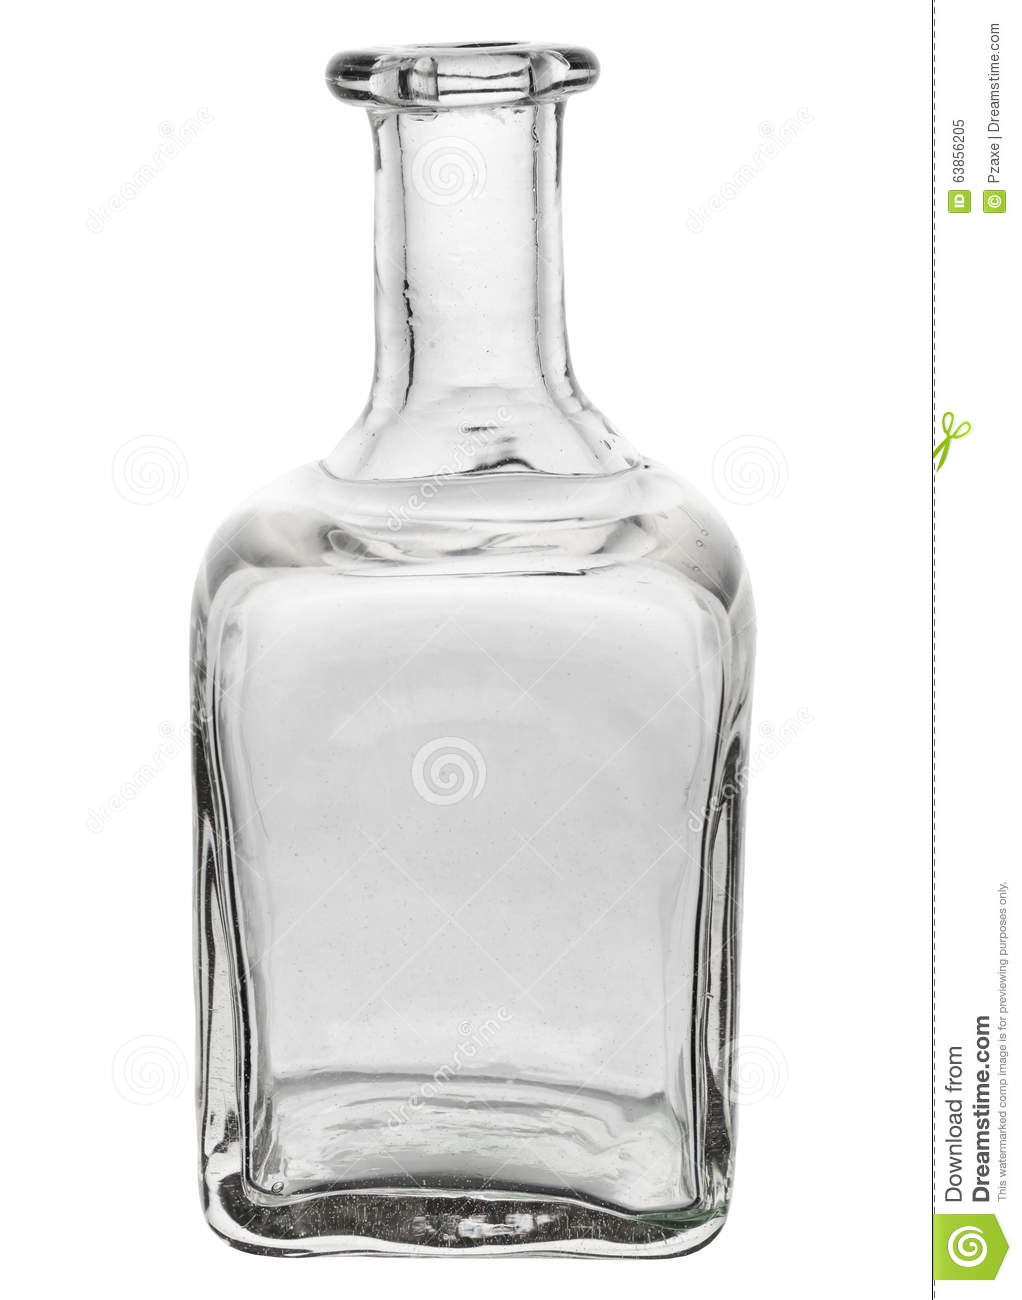 Download Beautiful Glass Bottle With Curved Edges Stock Image - Image of silver, vertical: 63856205